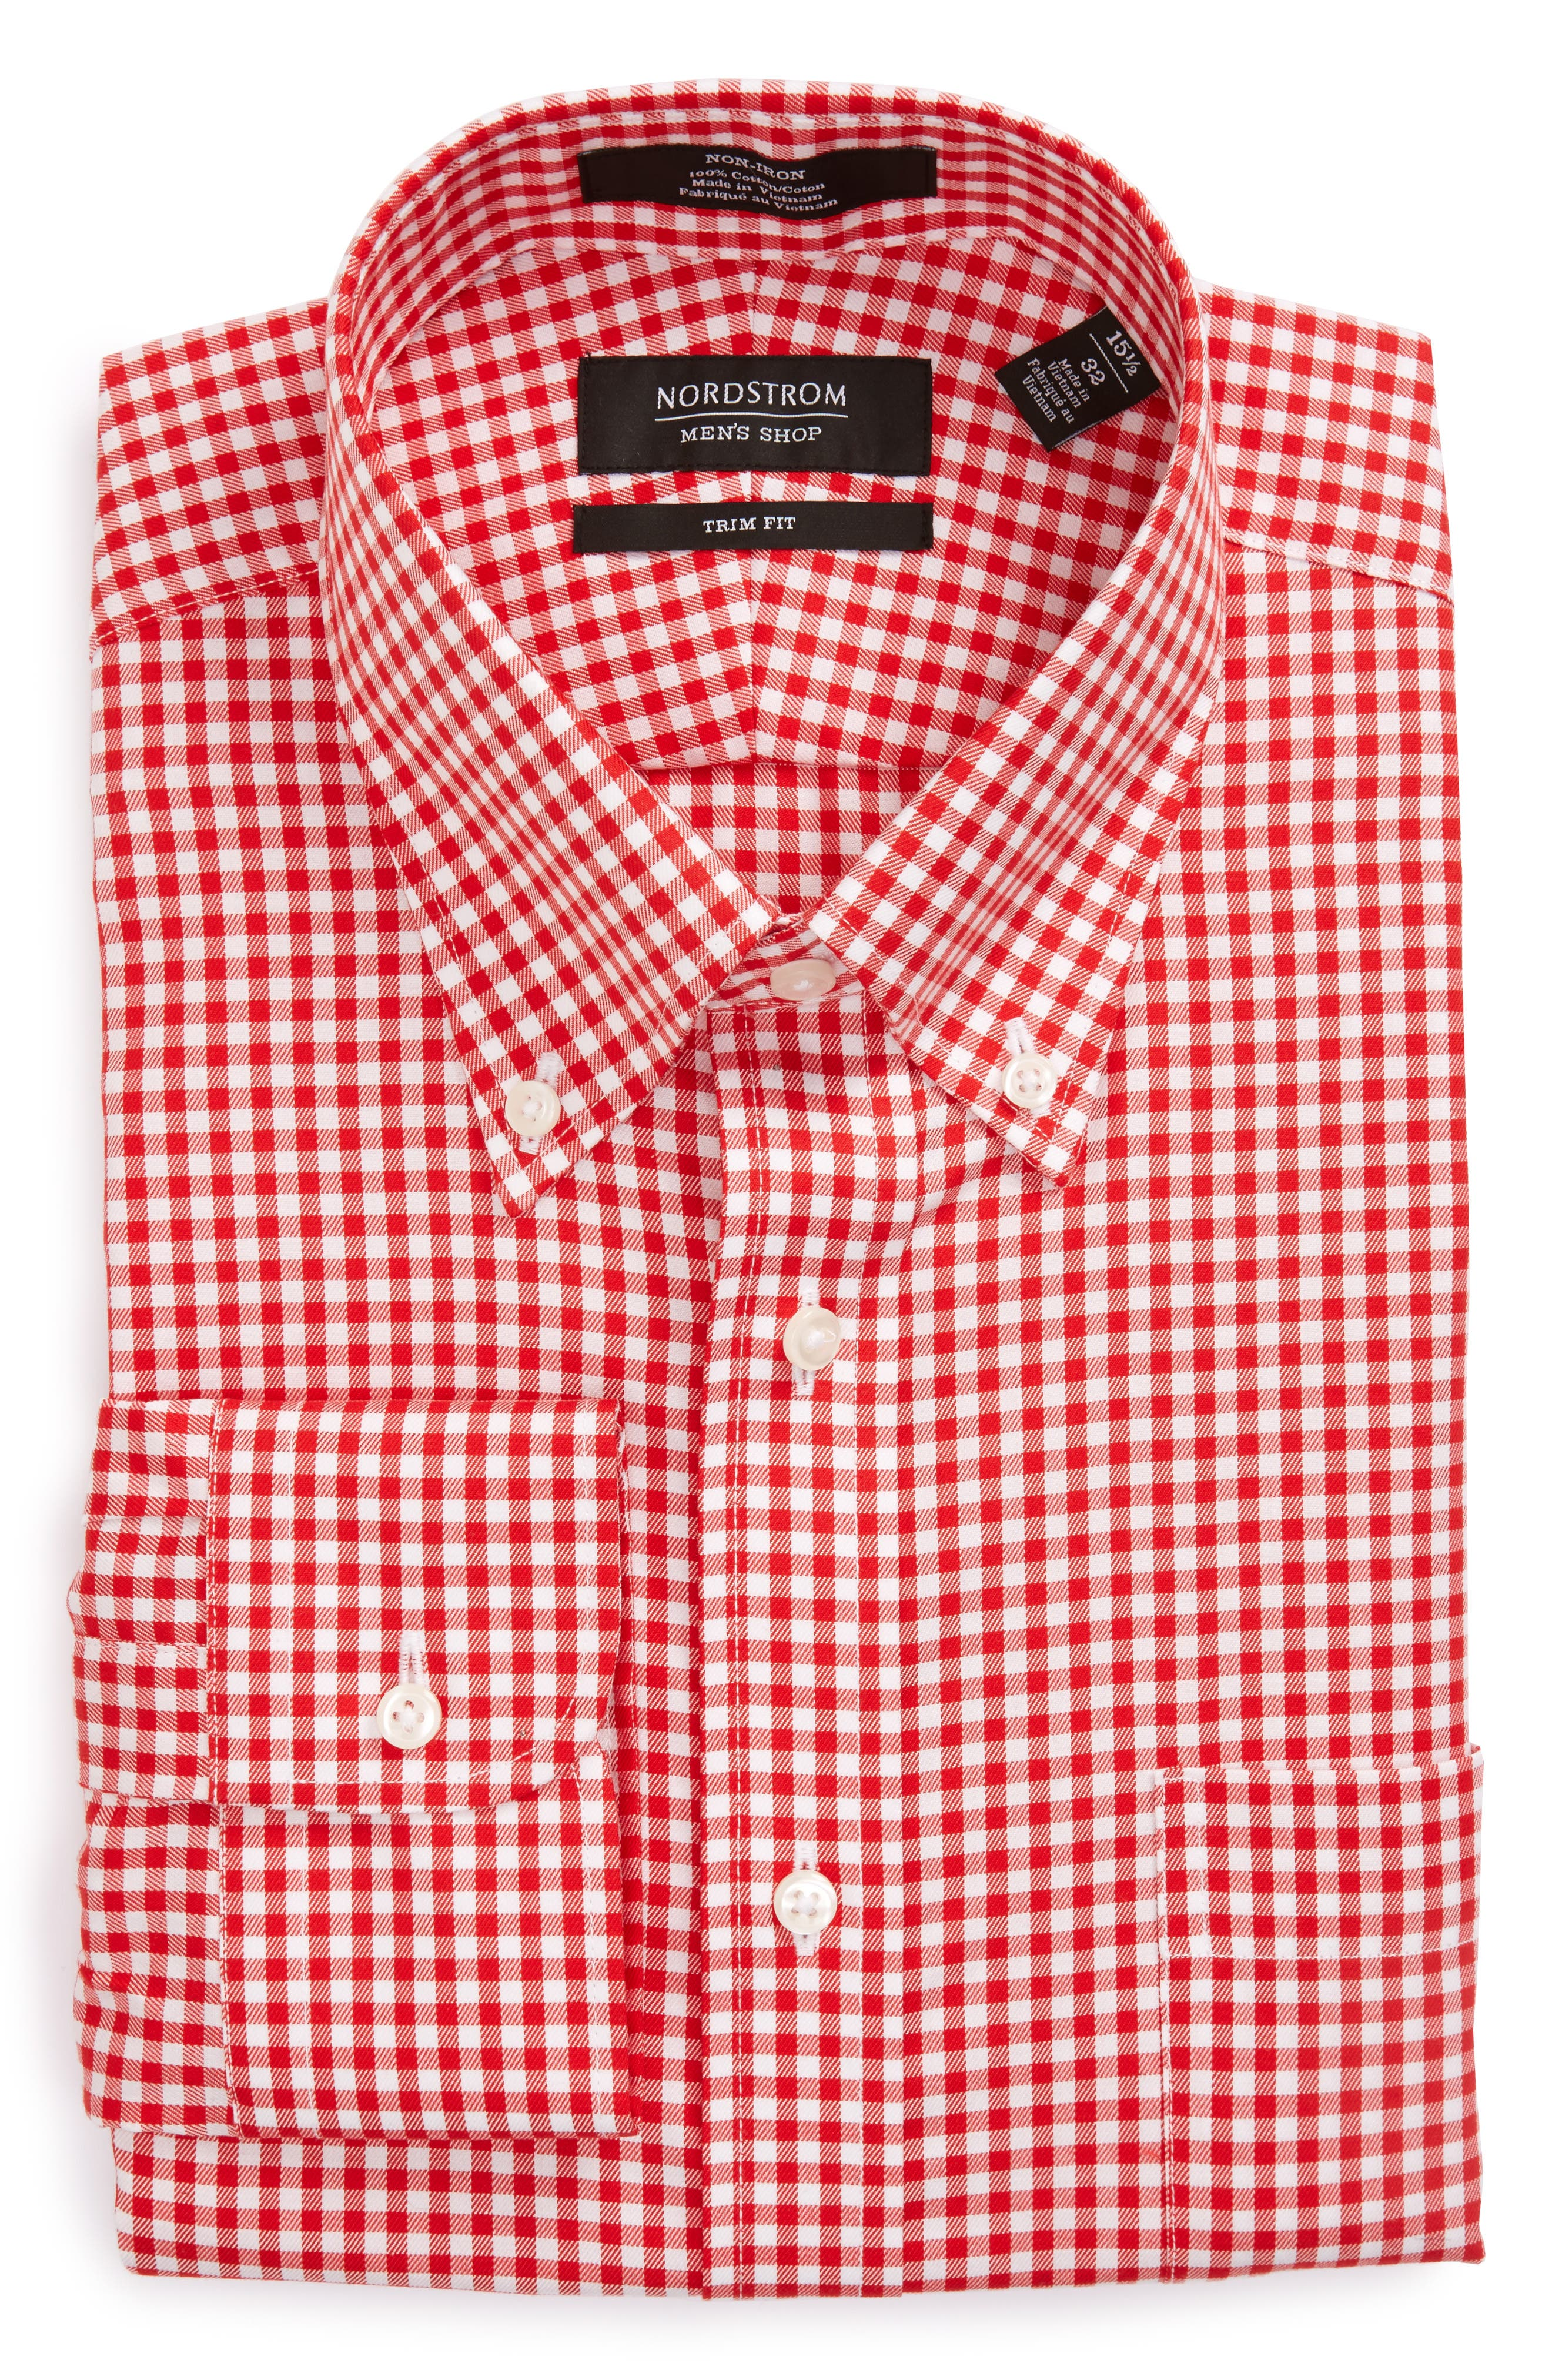 Alternate Image 1 Selected - Nordstrom Men's Shop Trim Fit Non-Iron Gingham Dress Shirt